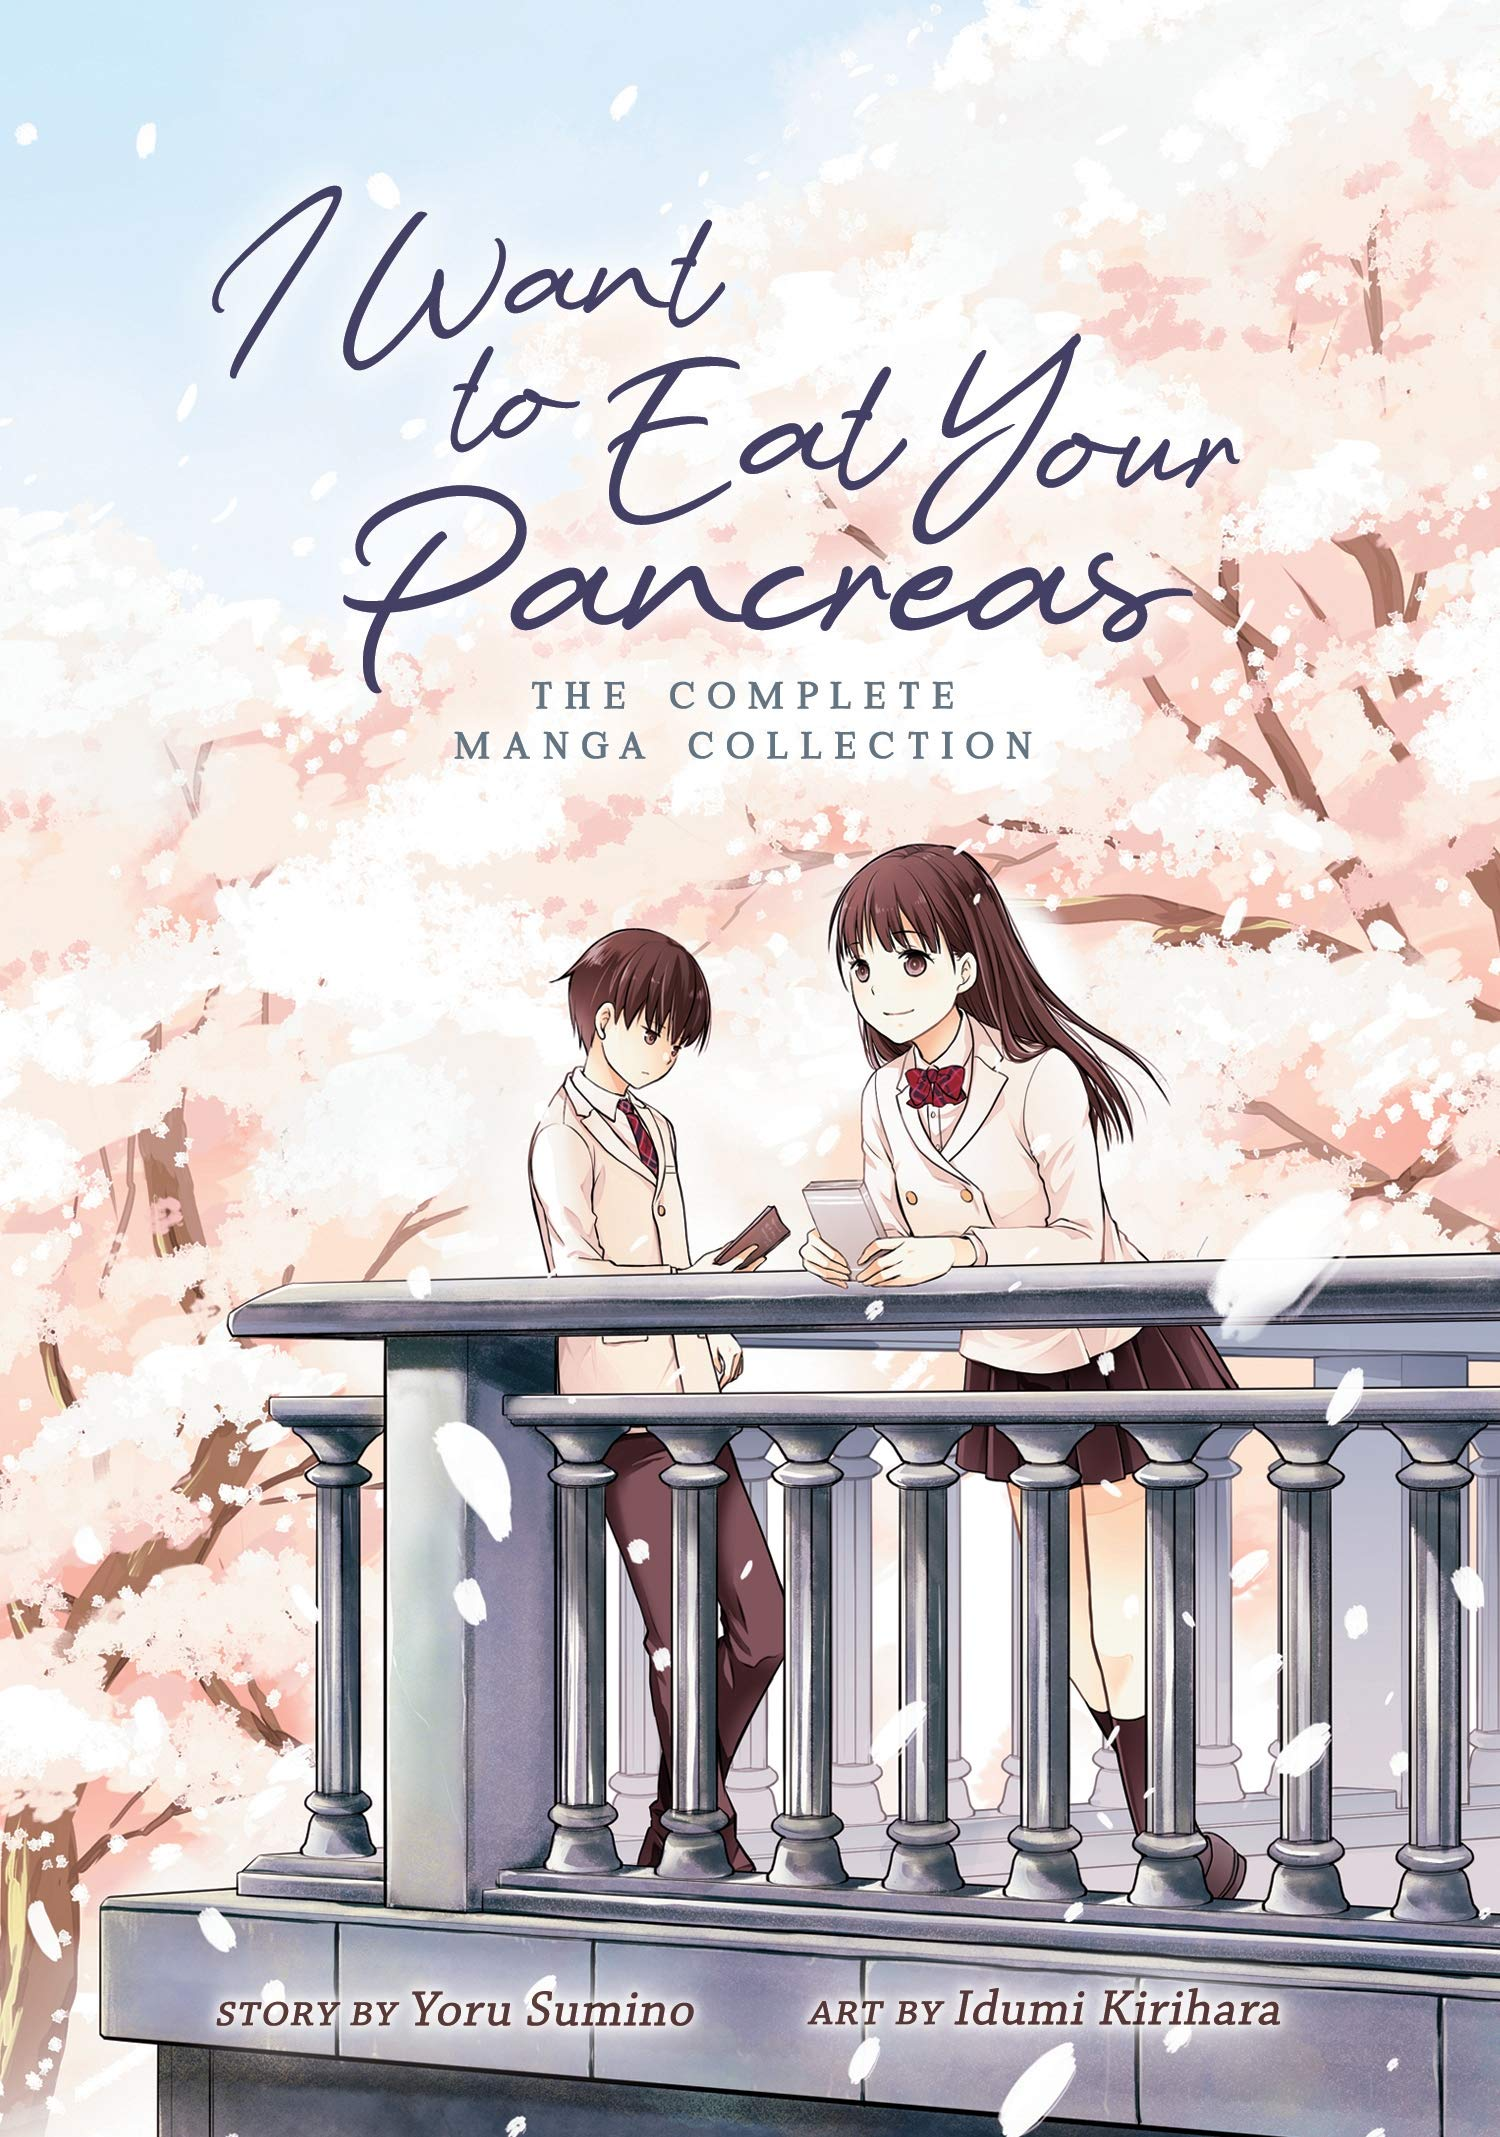 I Want To Eat Your Pancreas Manga 9781642750324 Sumino Yoru Kirihara Idumi Books